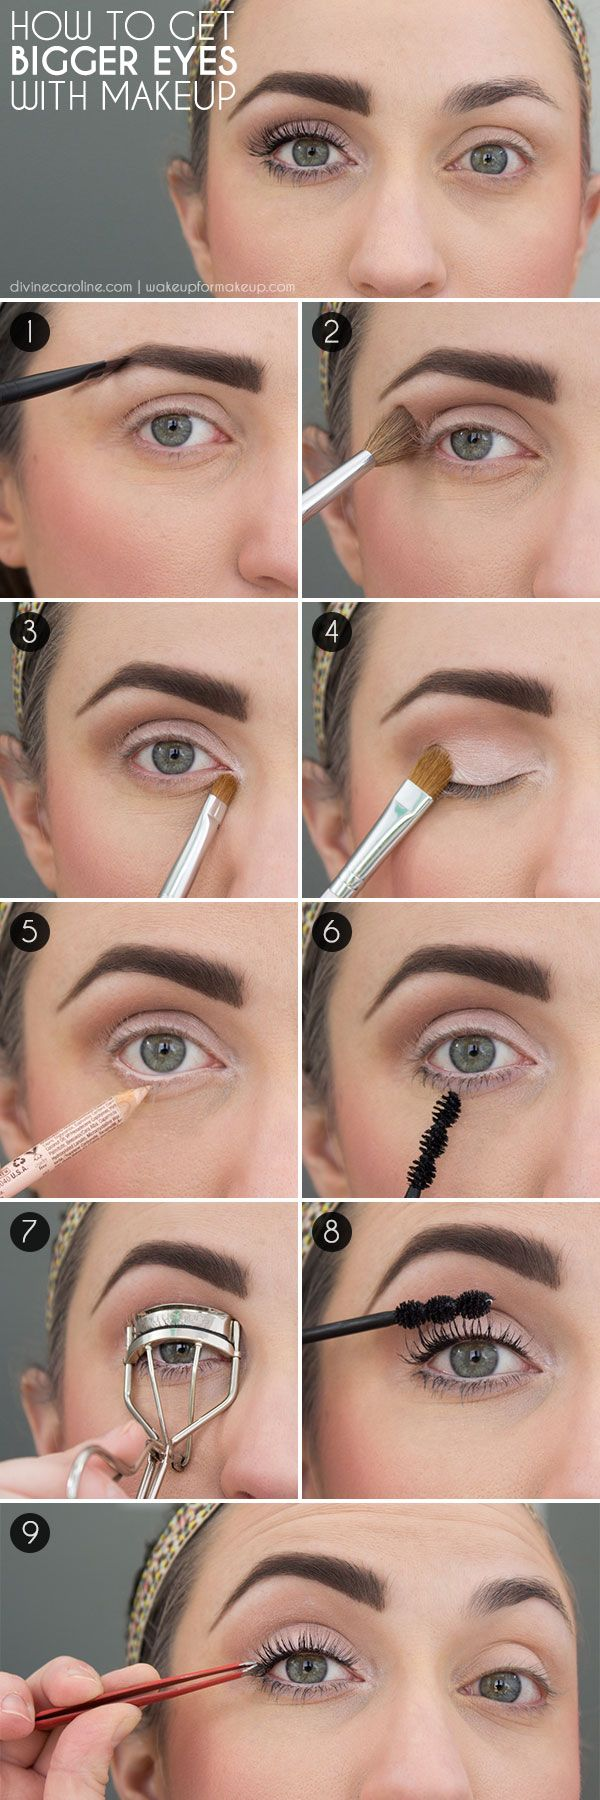 How To Make Your Eyes Look Bigger With Makeup More Eye Make Up Eye Makeup Beauty Makeup